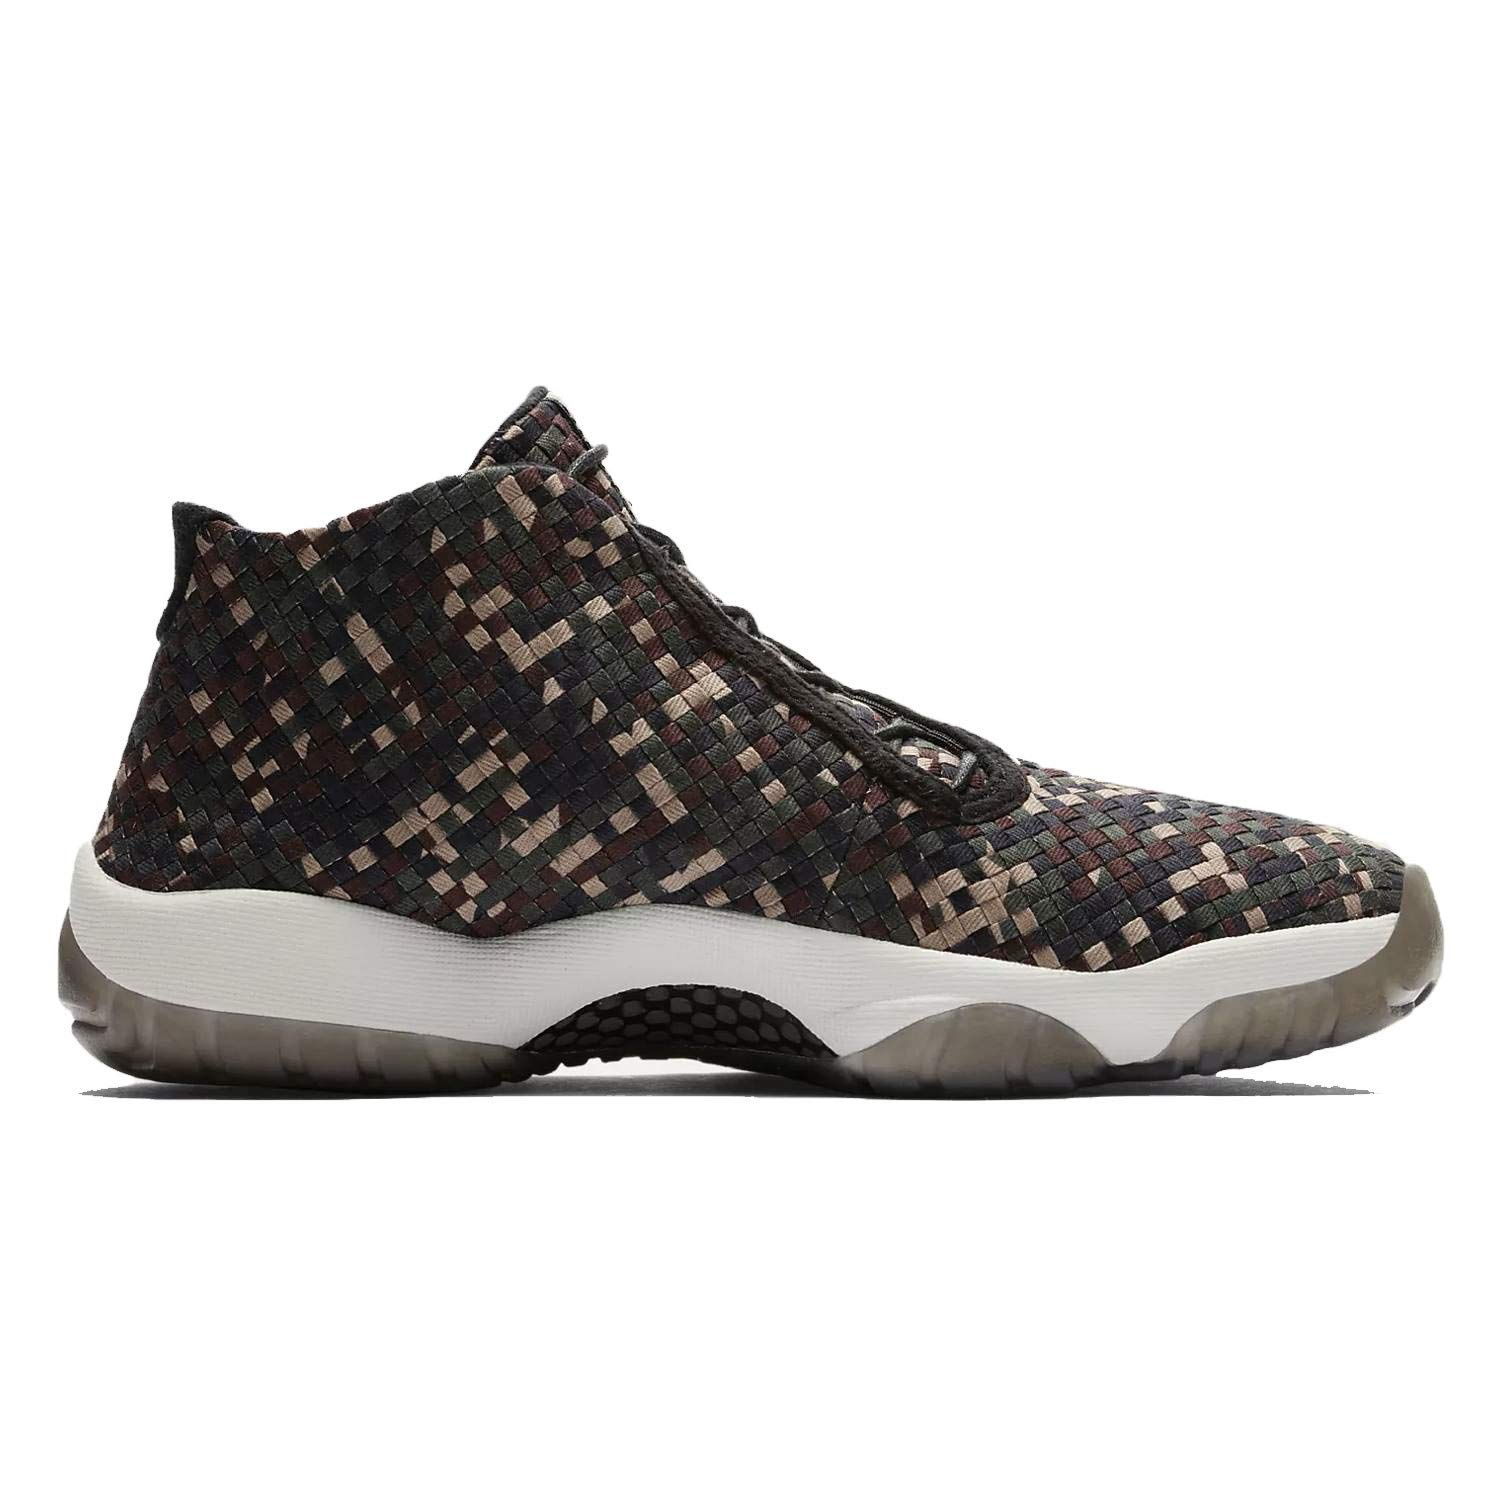 Image of Basketball Nike Men's Air Jordan Future Premium Dark Army/Black-Sail 652141-301 (Size: 9)